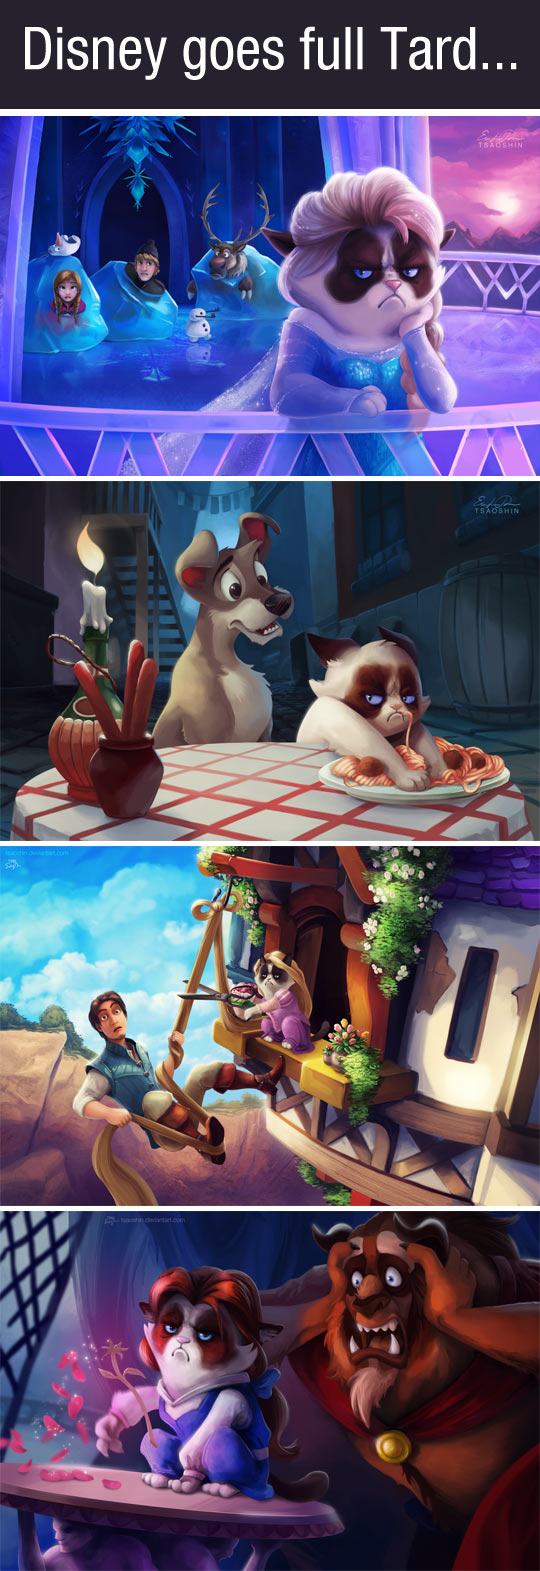 If Grumpy Cat was the star of Disney movies...